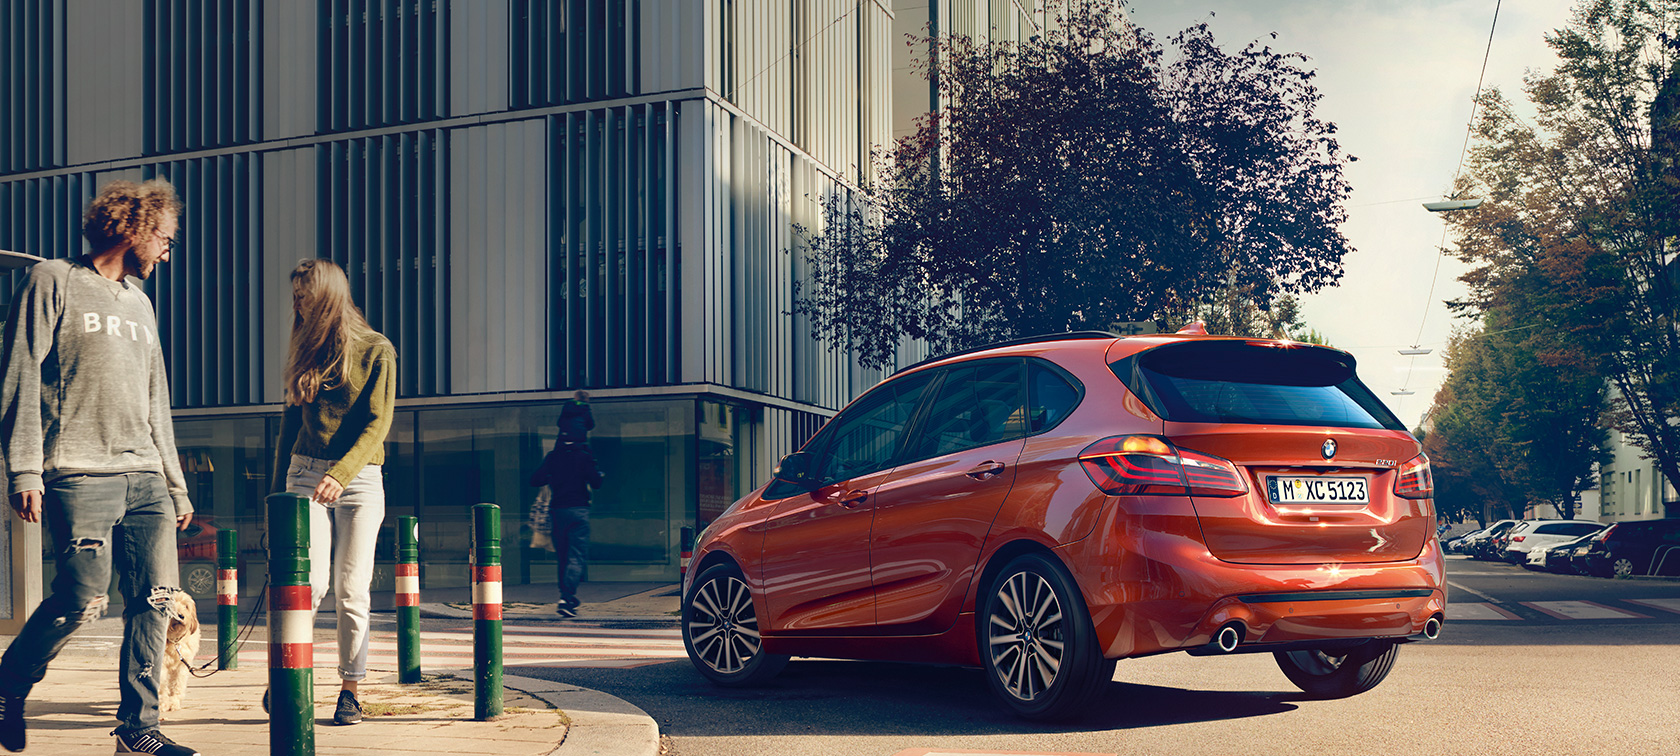 BMW 2-serie Active Tourer 220i F45 Facelift 2018 Sunset Orange metallic sedd snett bakifrån körandes på väg